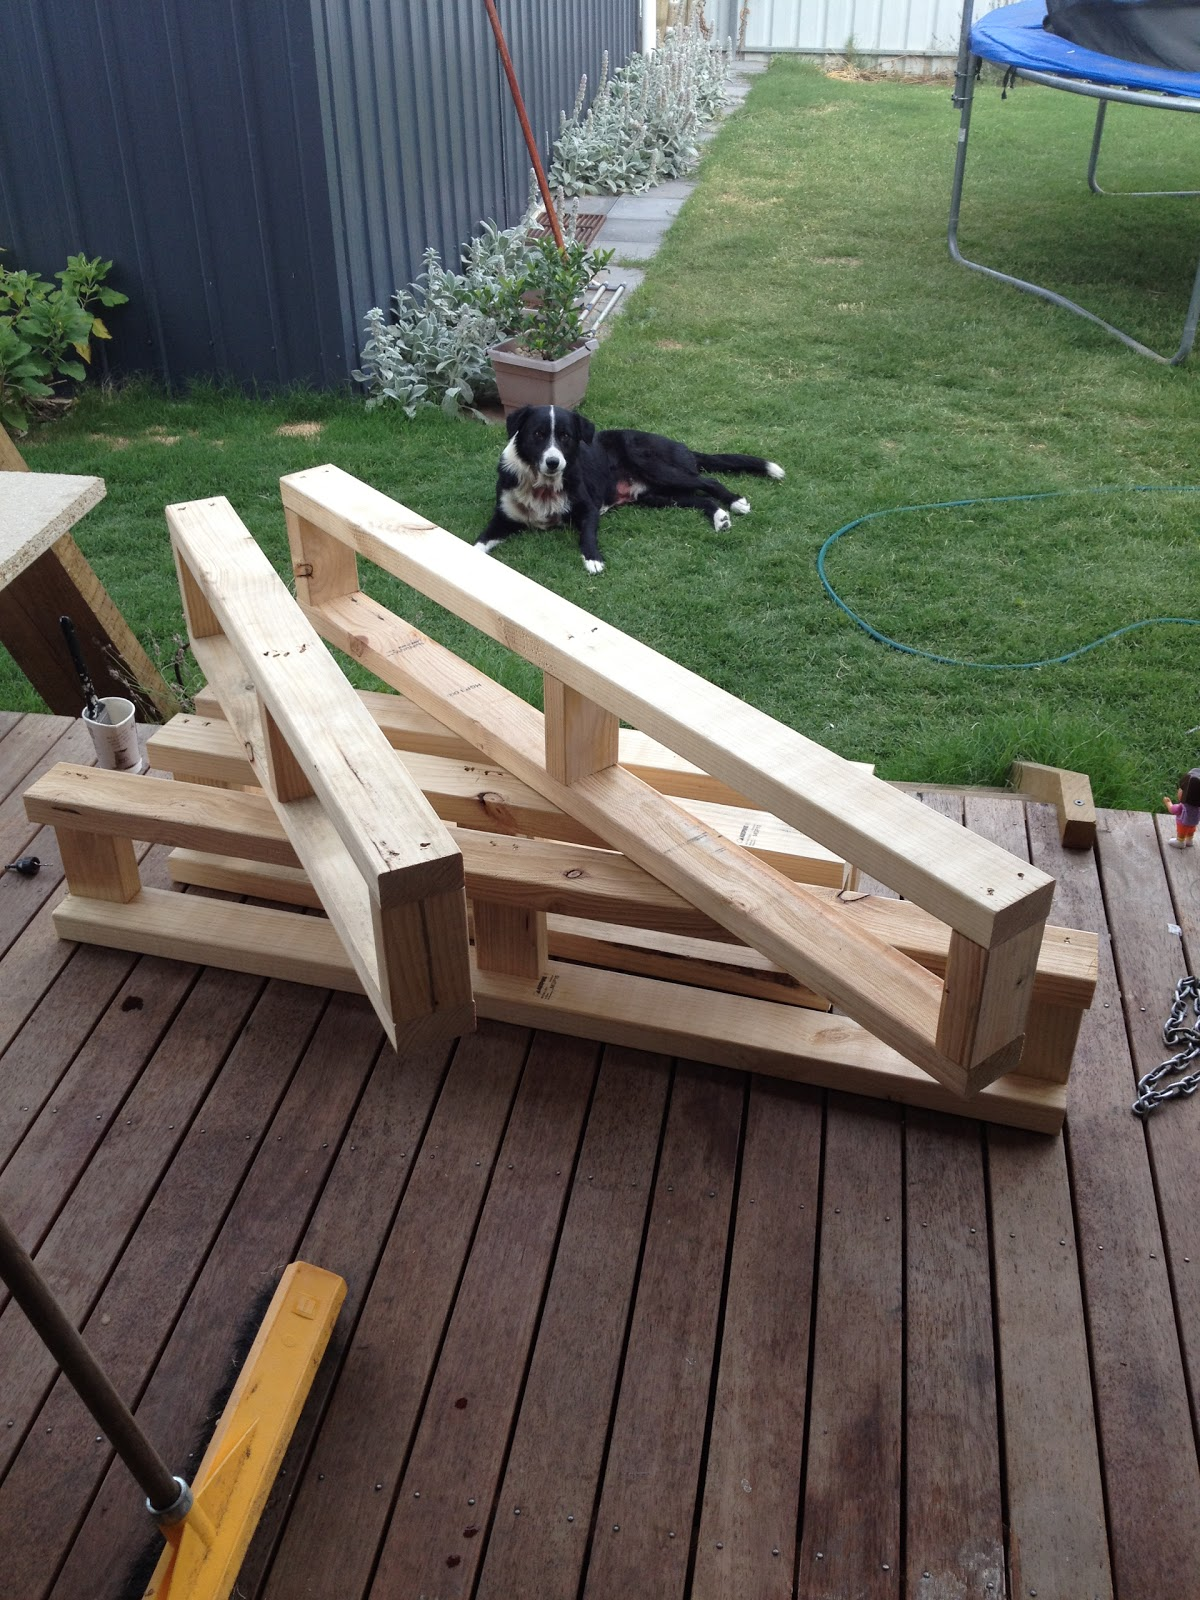 Daybed frame diy - We Used Pine 2x4 S And Made Frames To Suit Our Measurements 2 X For Each End And 3 X For The Remaining Ends And One To Go Through The Middle For Support